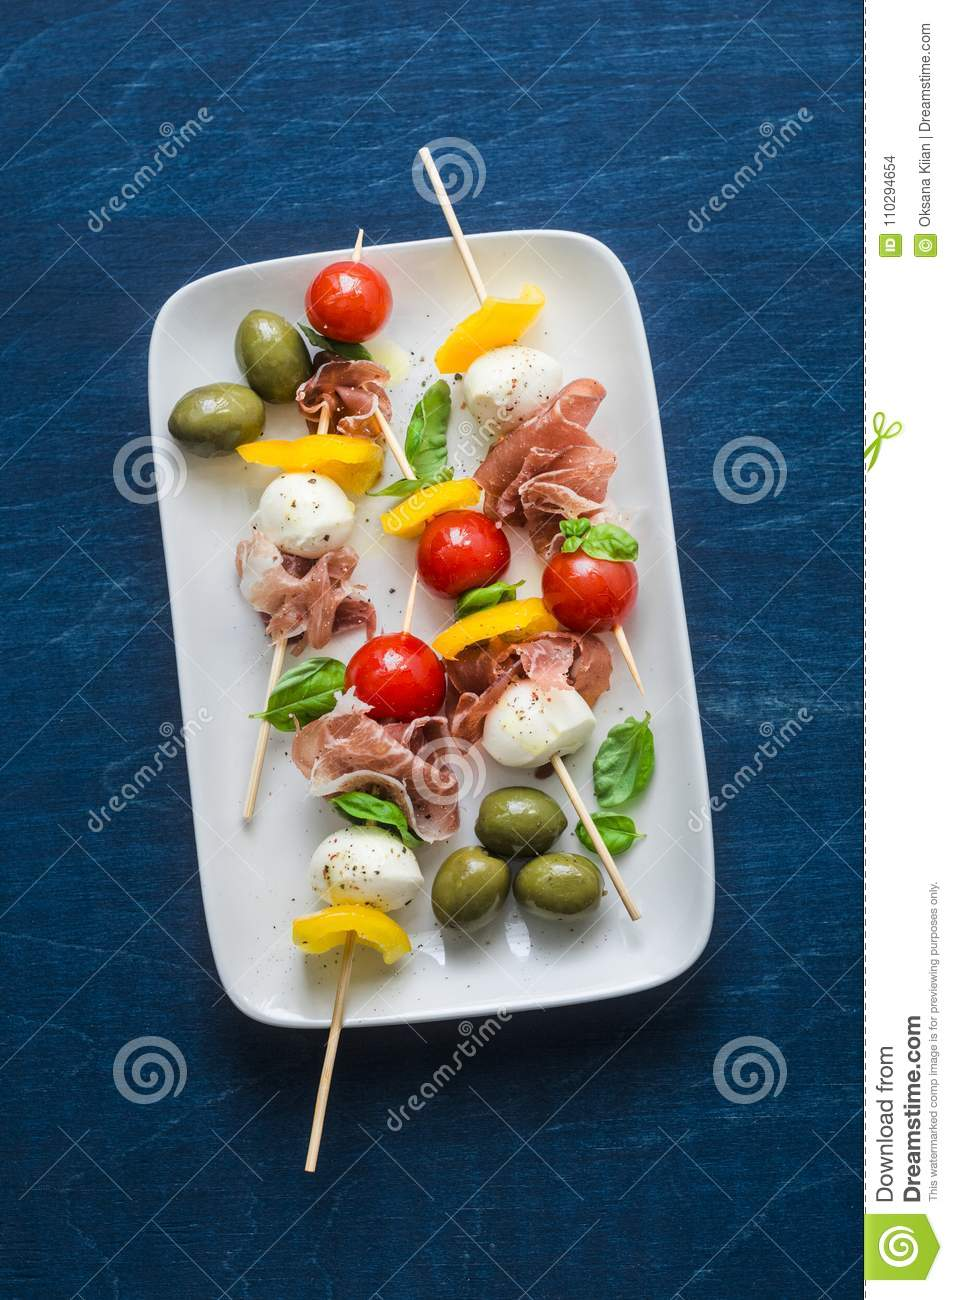 Antipasto skewers. Mediterranean appetizer to wine - prosciutto, bell peppers, cherry tomatoes, mozzarella cheese on skewers. Deli